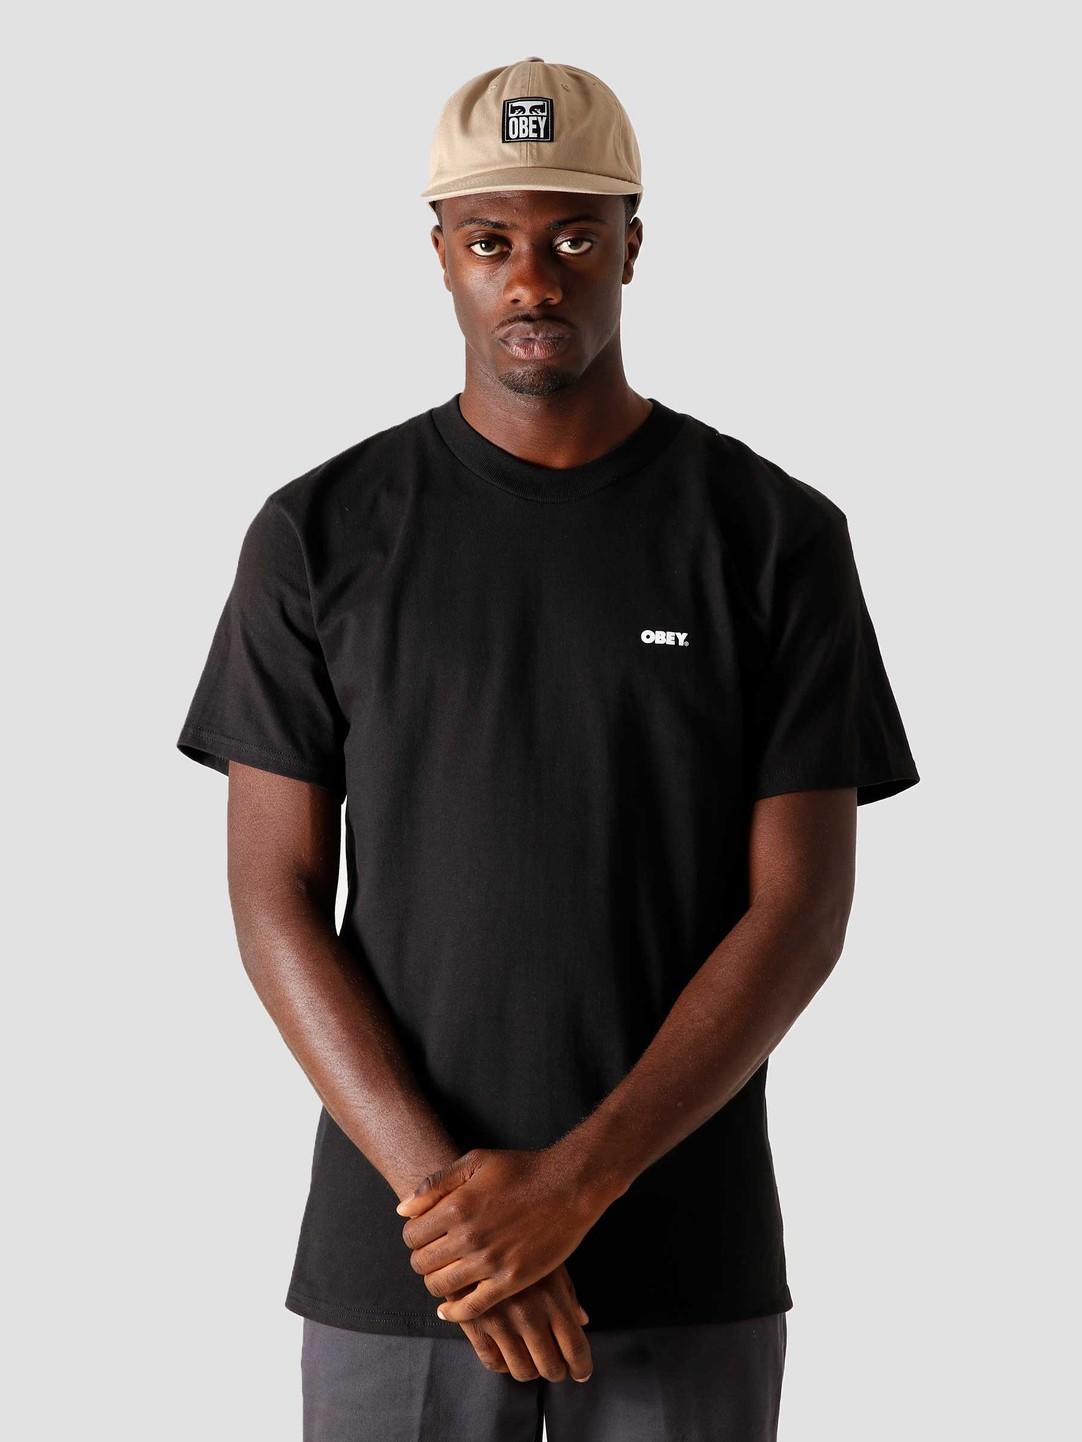 Obey Obey Power & Equality Classic T-Shirt Black 165262397BLK